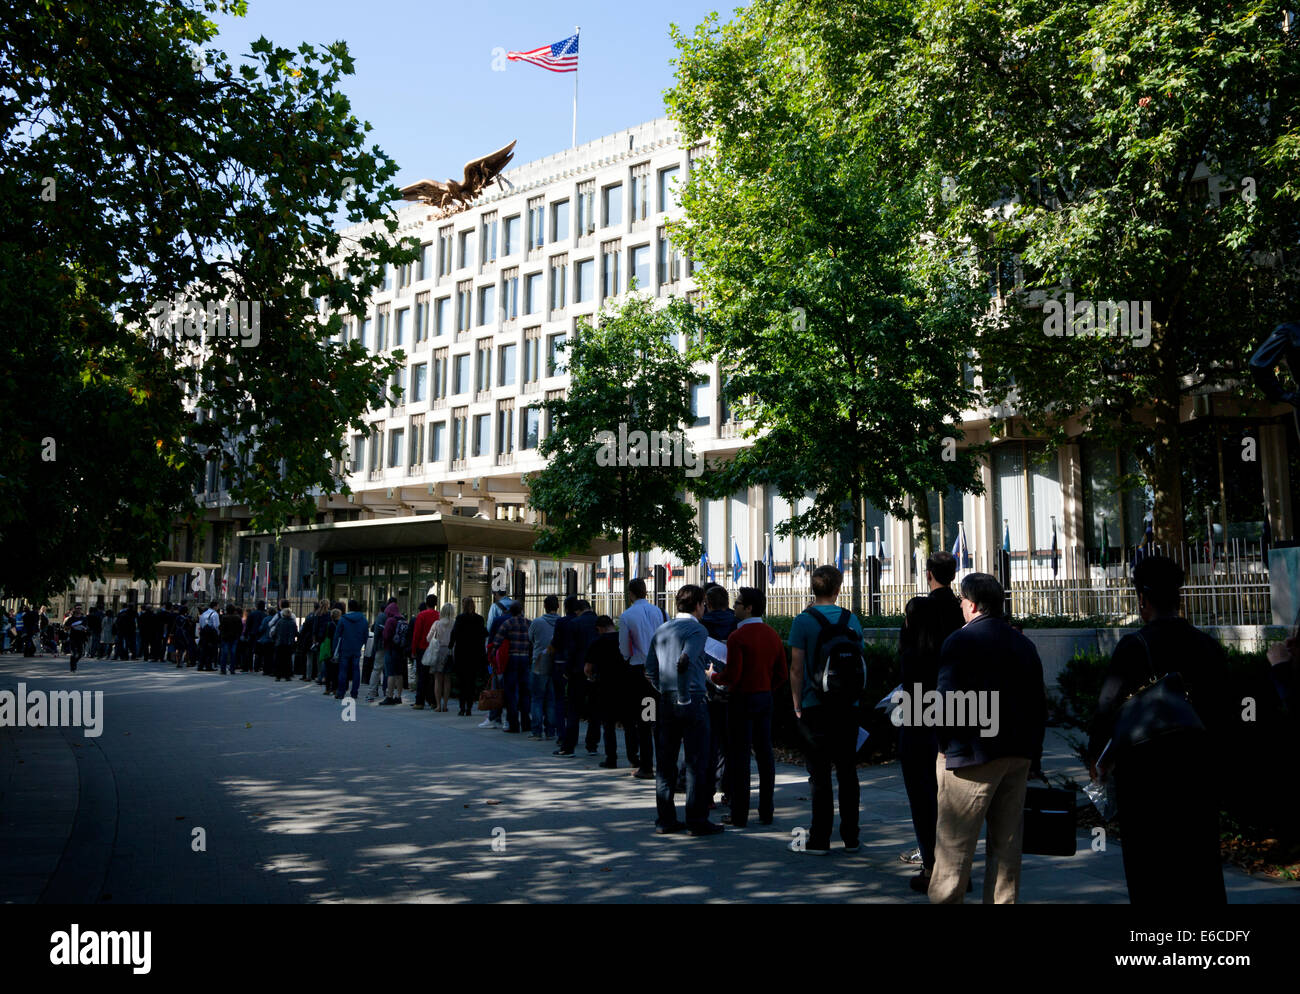 Queue for security check at U.S. Embassy in Grosvenor Square, Mayfair, London - Stock Image